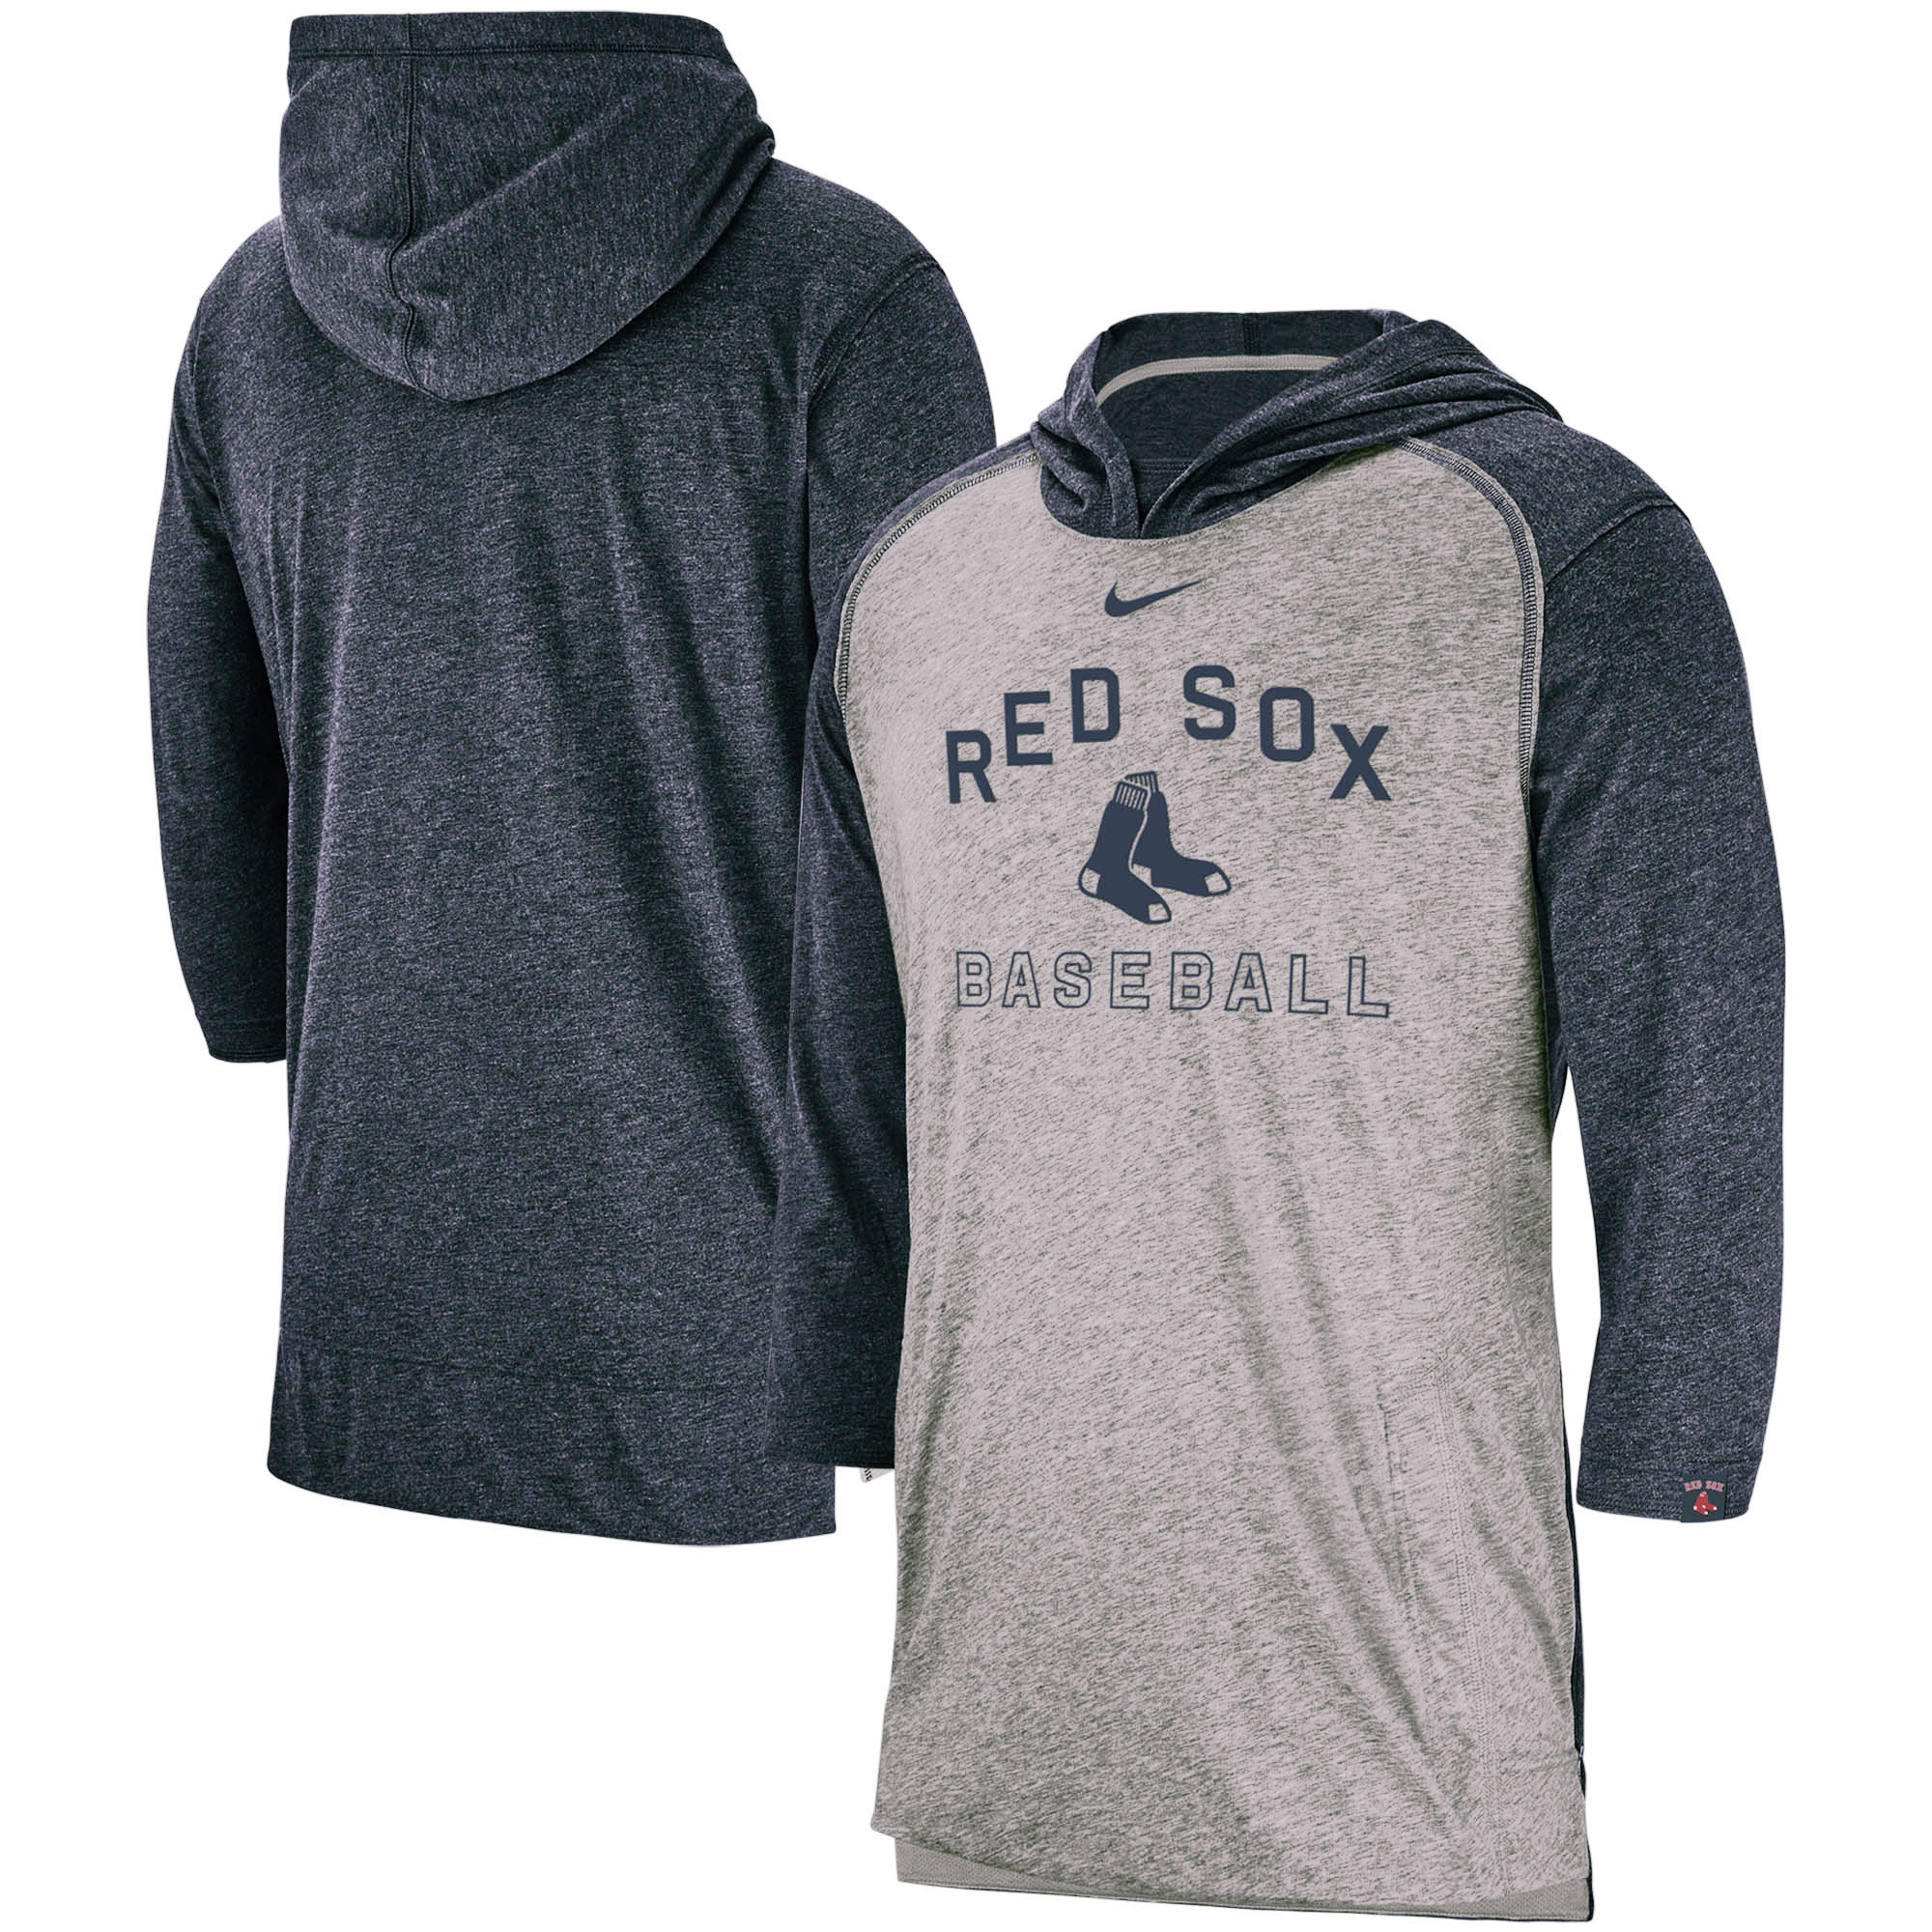 Boston Red Sox Nike Flux Performance 3/4-Sleeve Pullover Hoodie - Heathered Gray